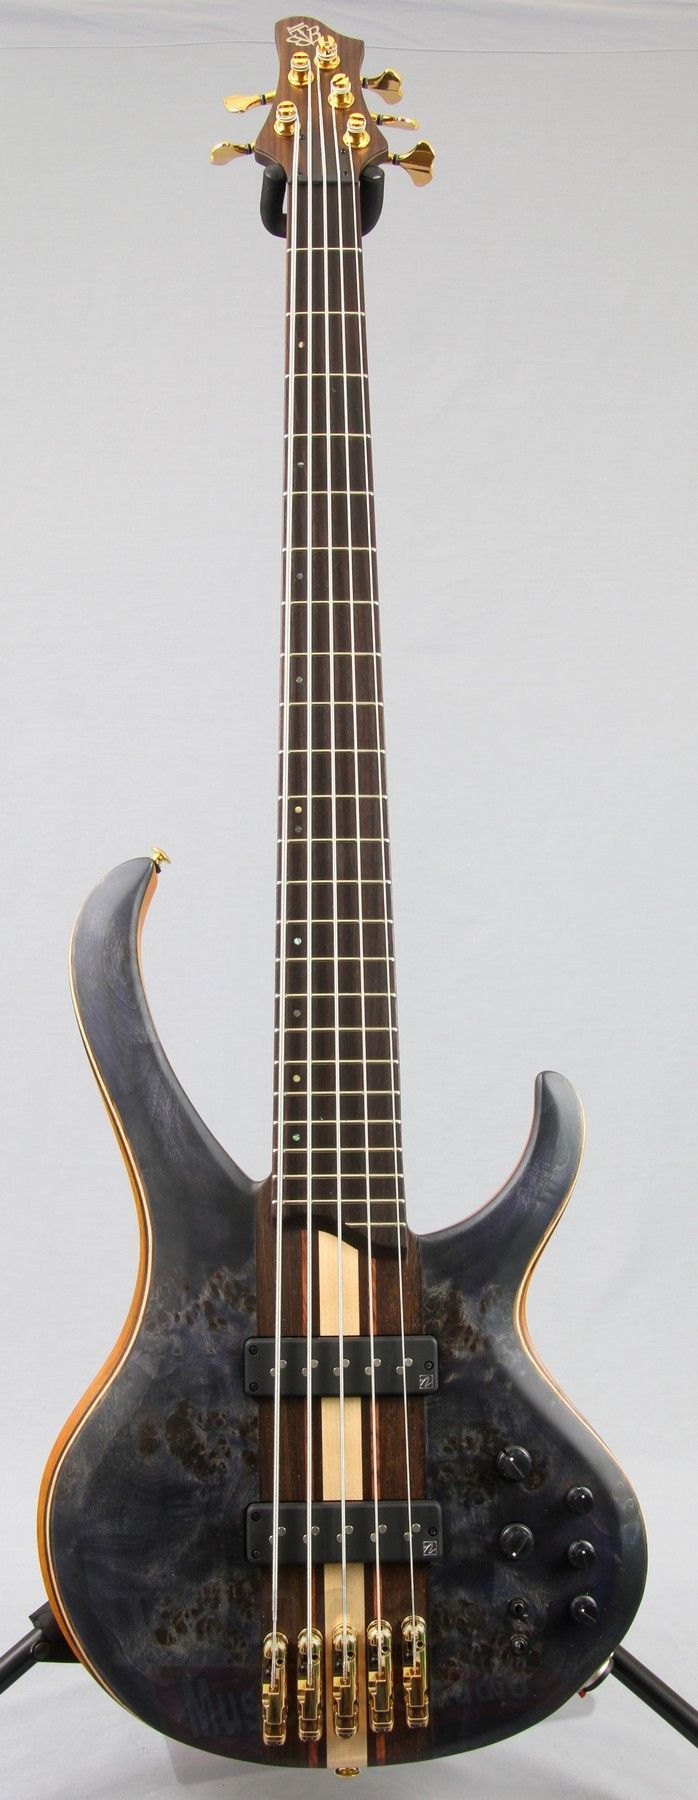 Ibanez BTB1605 Premium 5-String Bass Guitar Looking at this beauty, the words custom and boutique instantly come to mind. Select materials, top-of-the-line components, and a neck-thru body are all - more on www.guitaristica.org #bassguitar #guitars #guitaristica